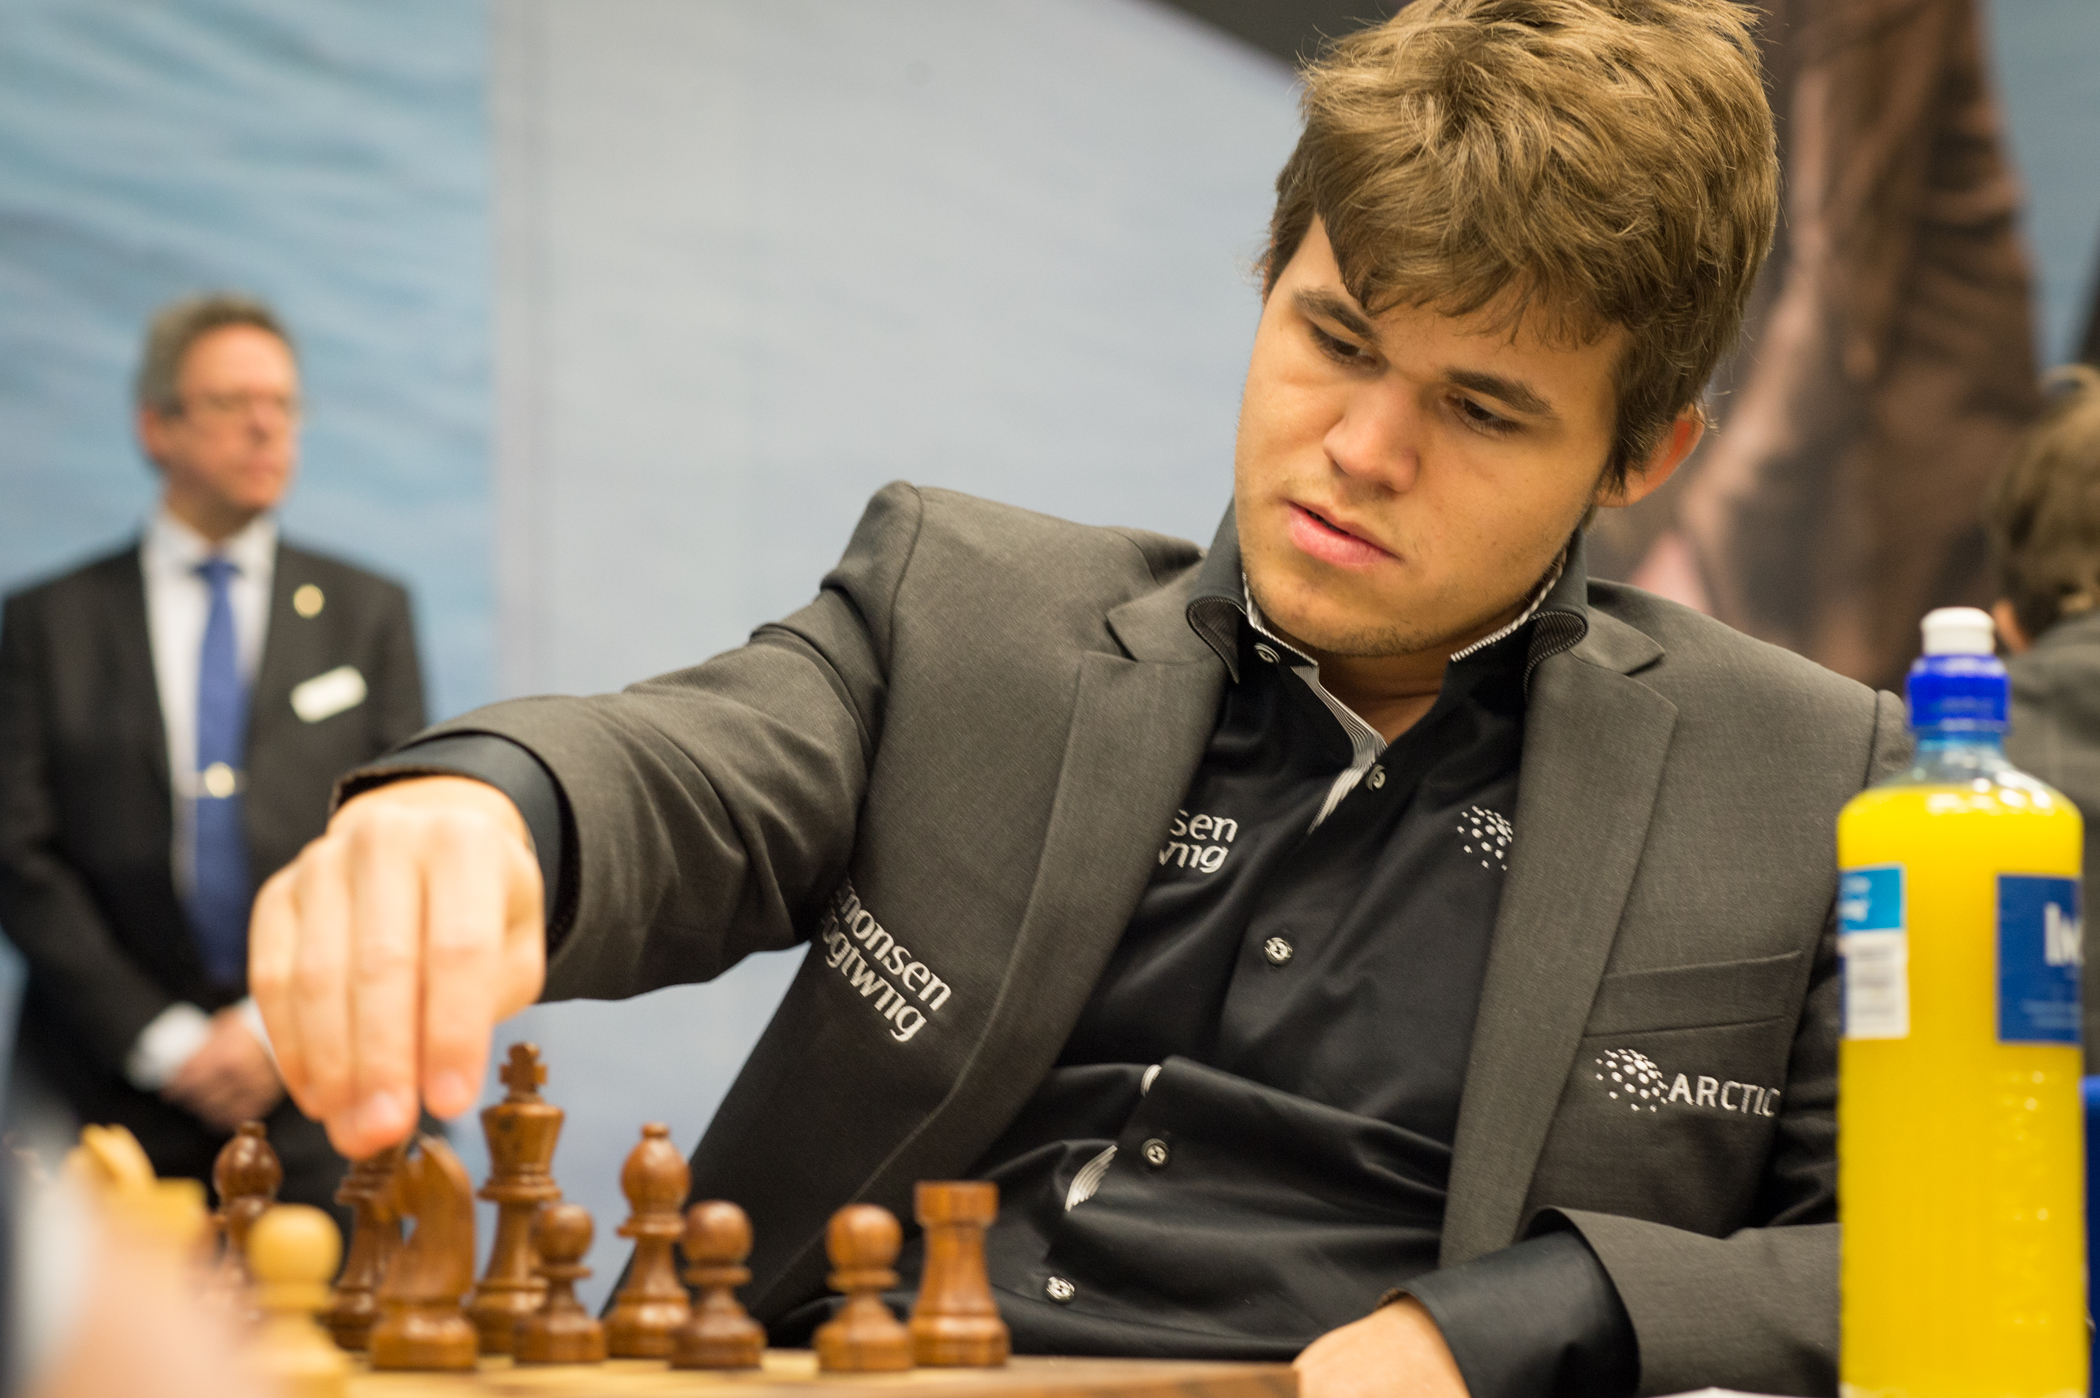 Magnus Carlsen earned a  million dollar salary, leaving the net worth at 10 million in 2017